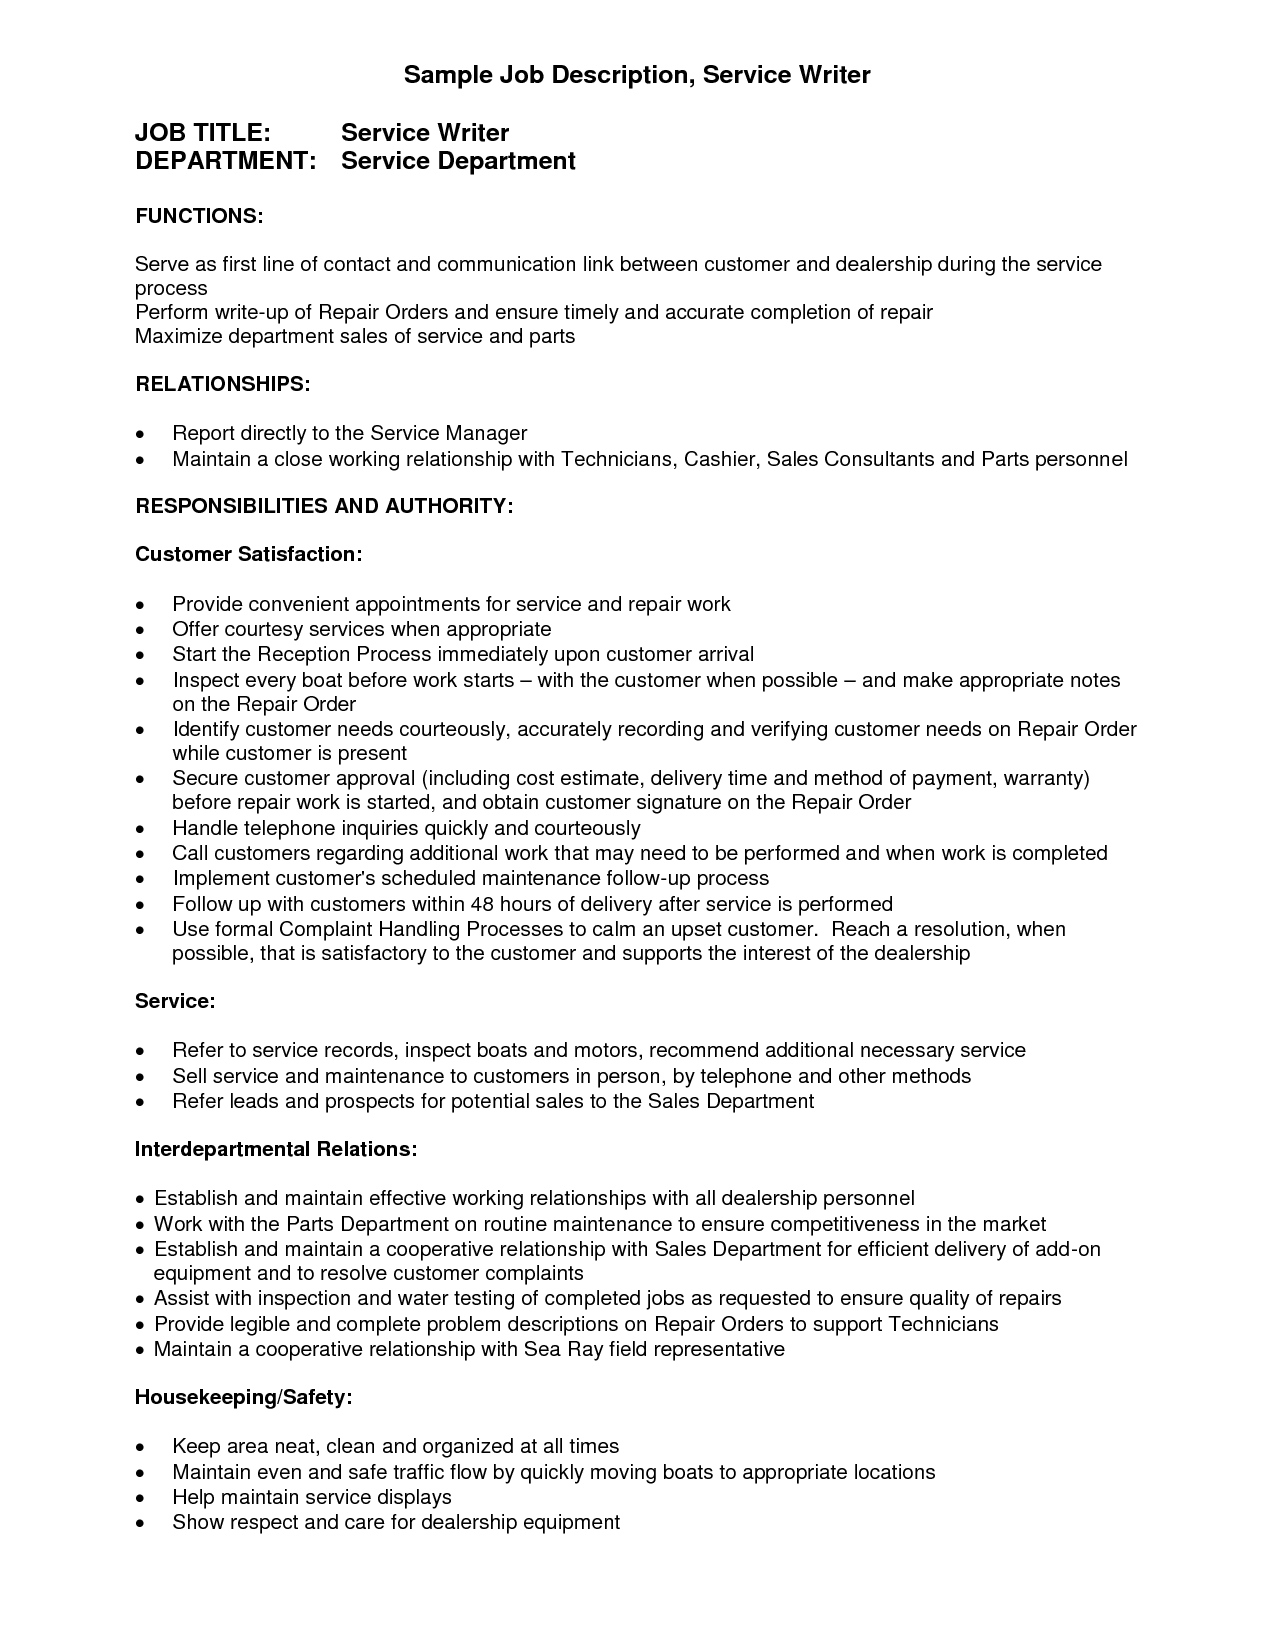 Going Paperless Letter to Customers Template - Resume Writing Service Best Templatewriting A Resume Cover Letter